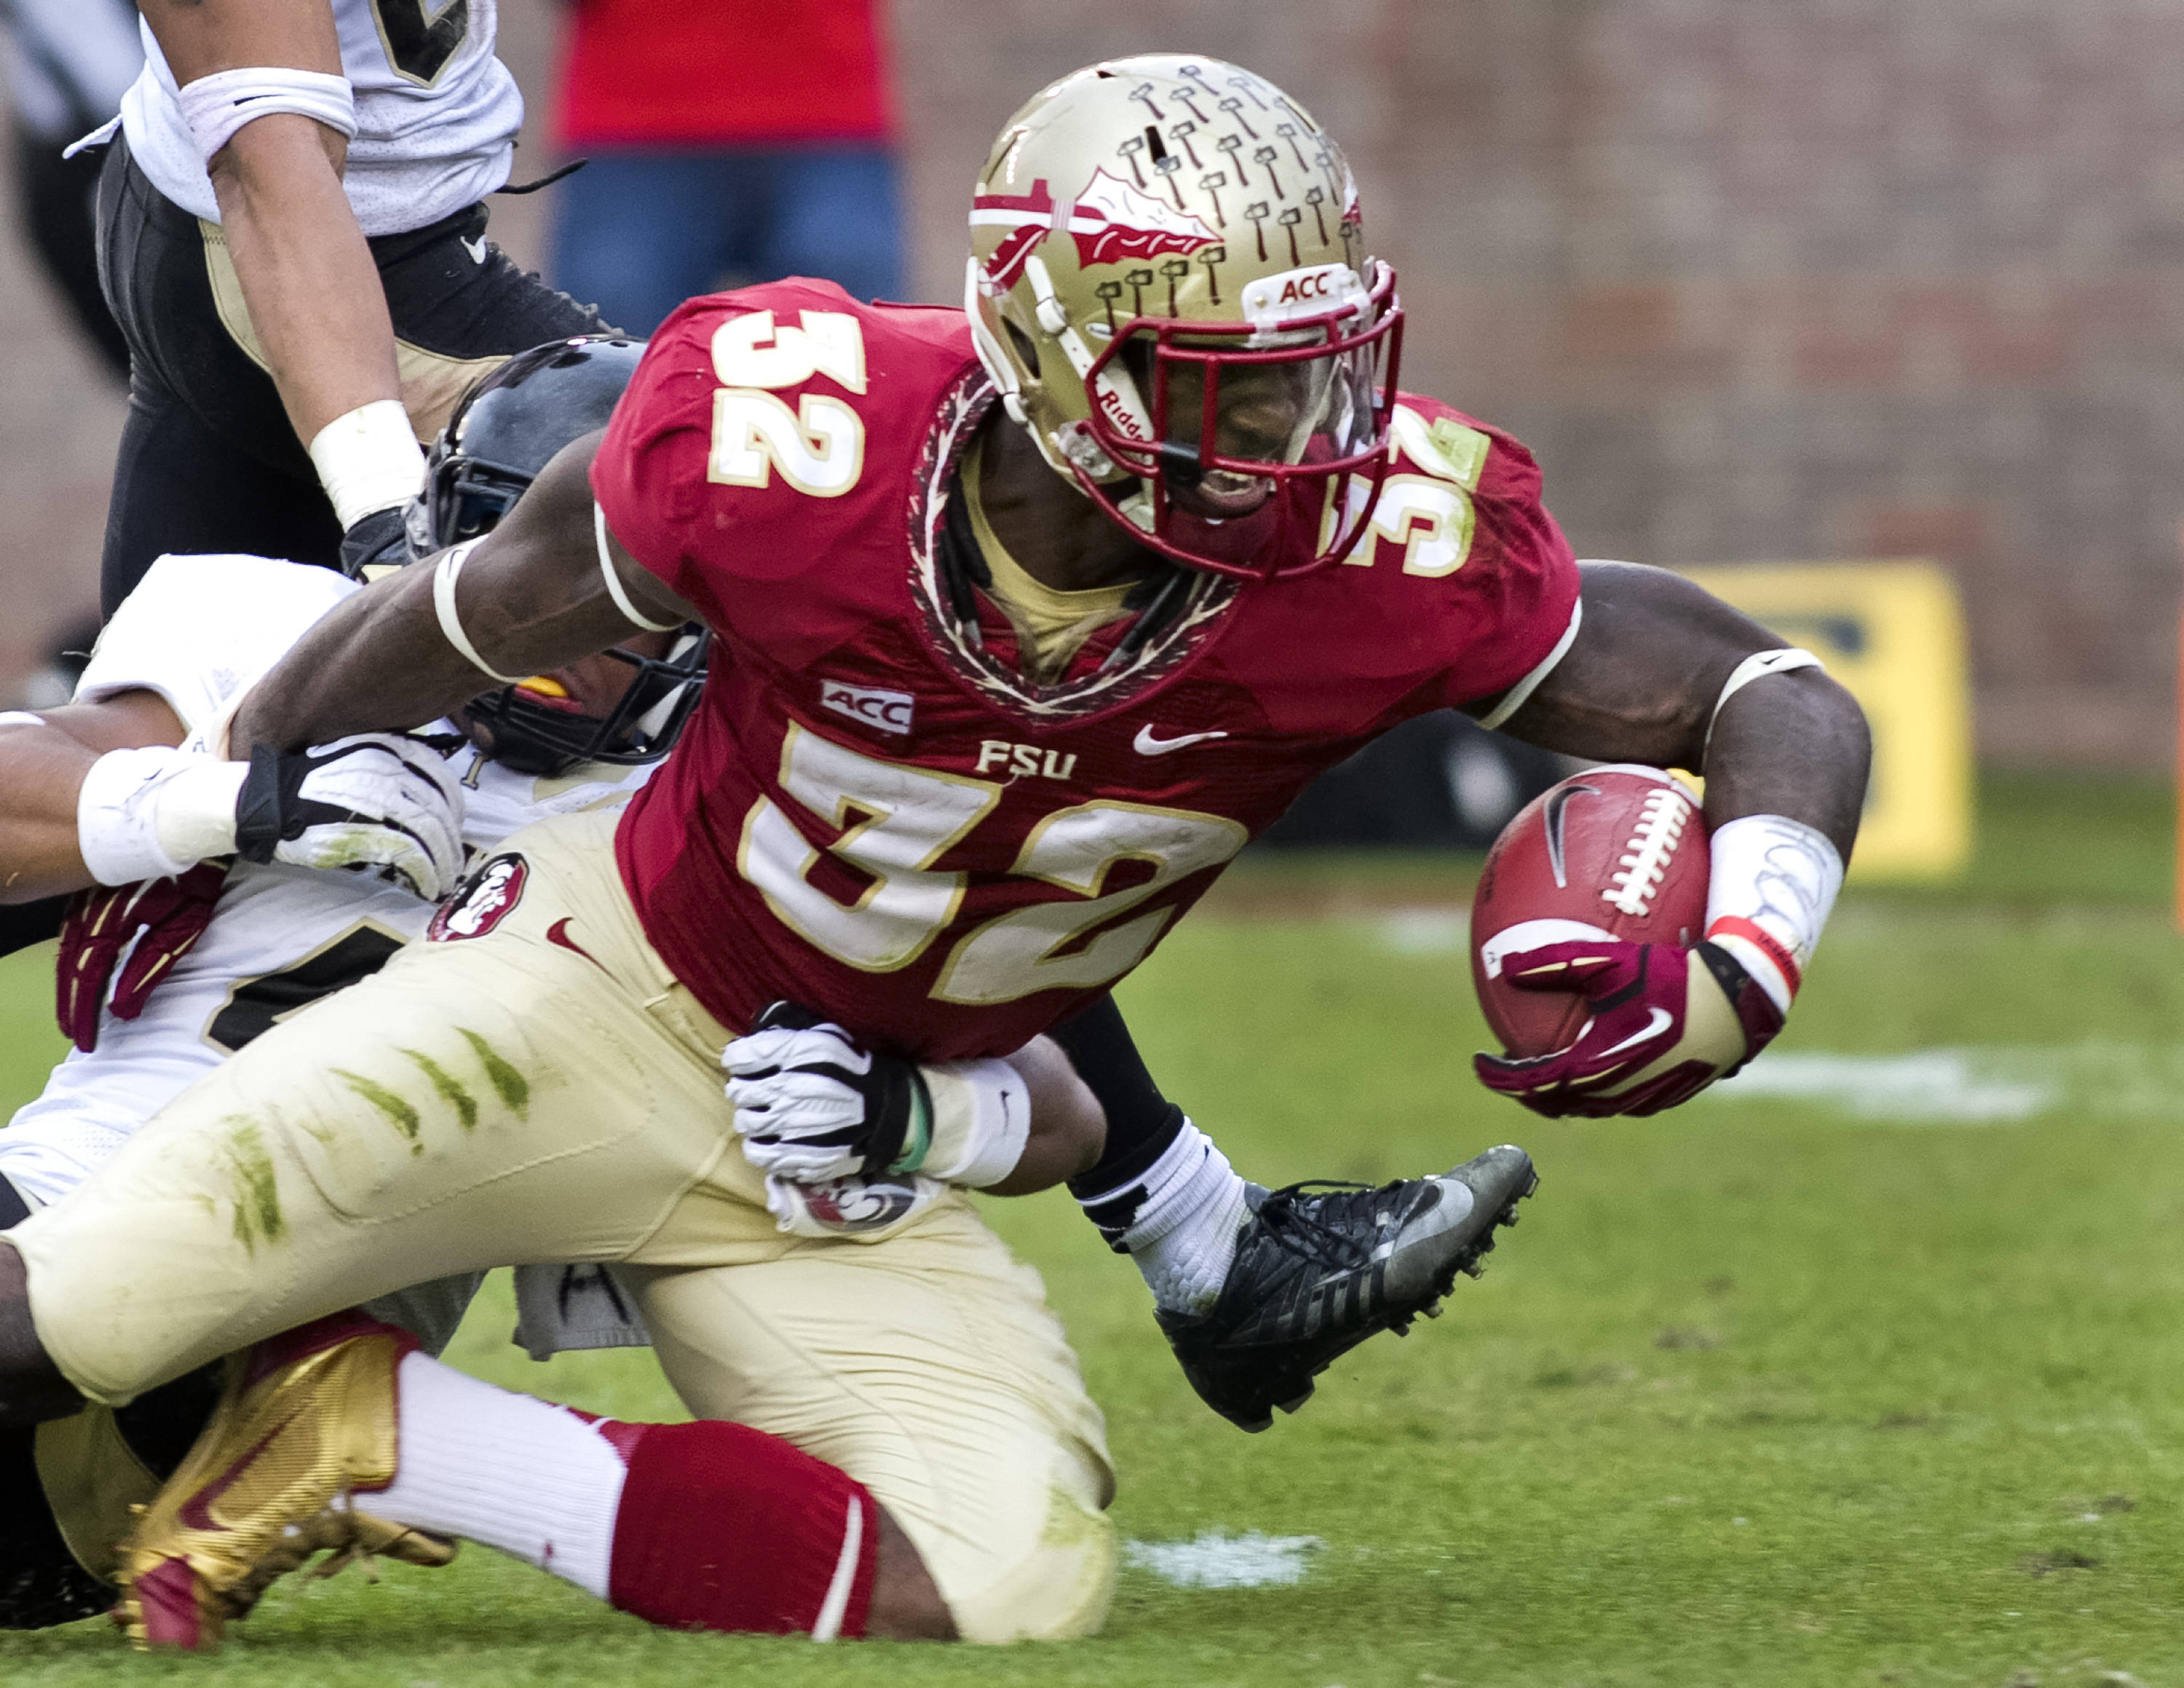 James Wilder, Jr. (32), FSU vs Idaho, 11-23-13,  (Photo by Steve Musco)